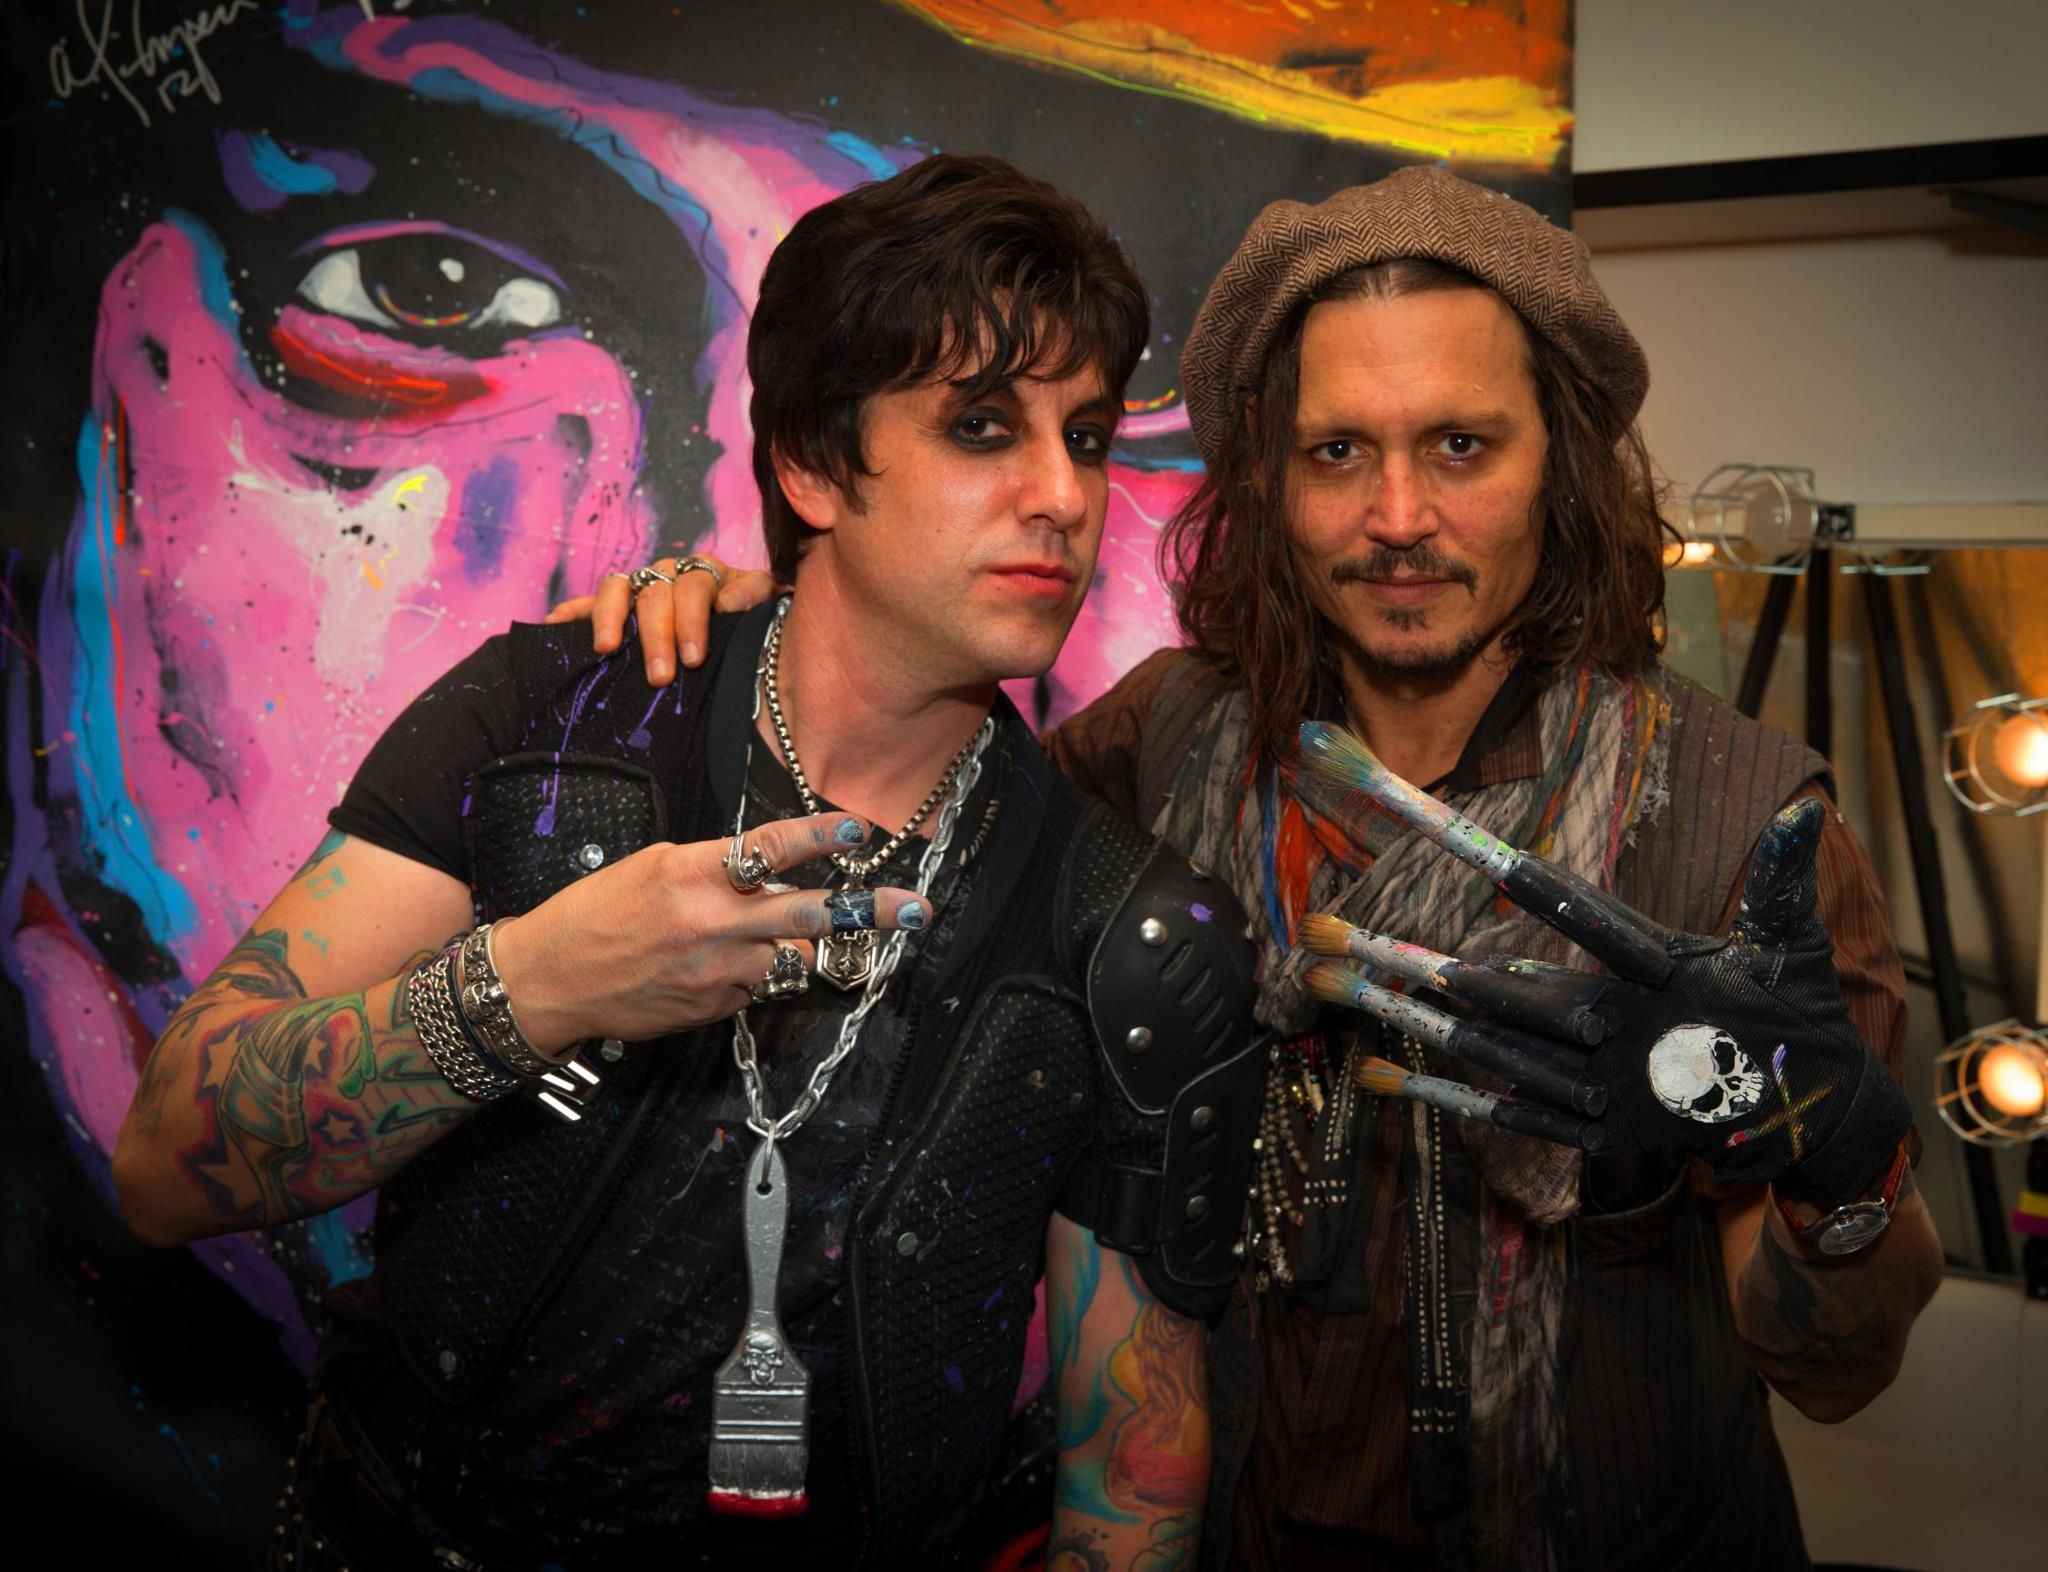 Rock Demarco Johnny Depp